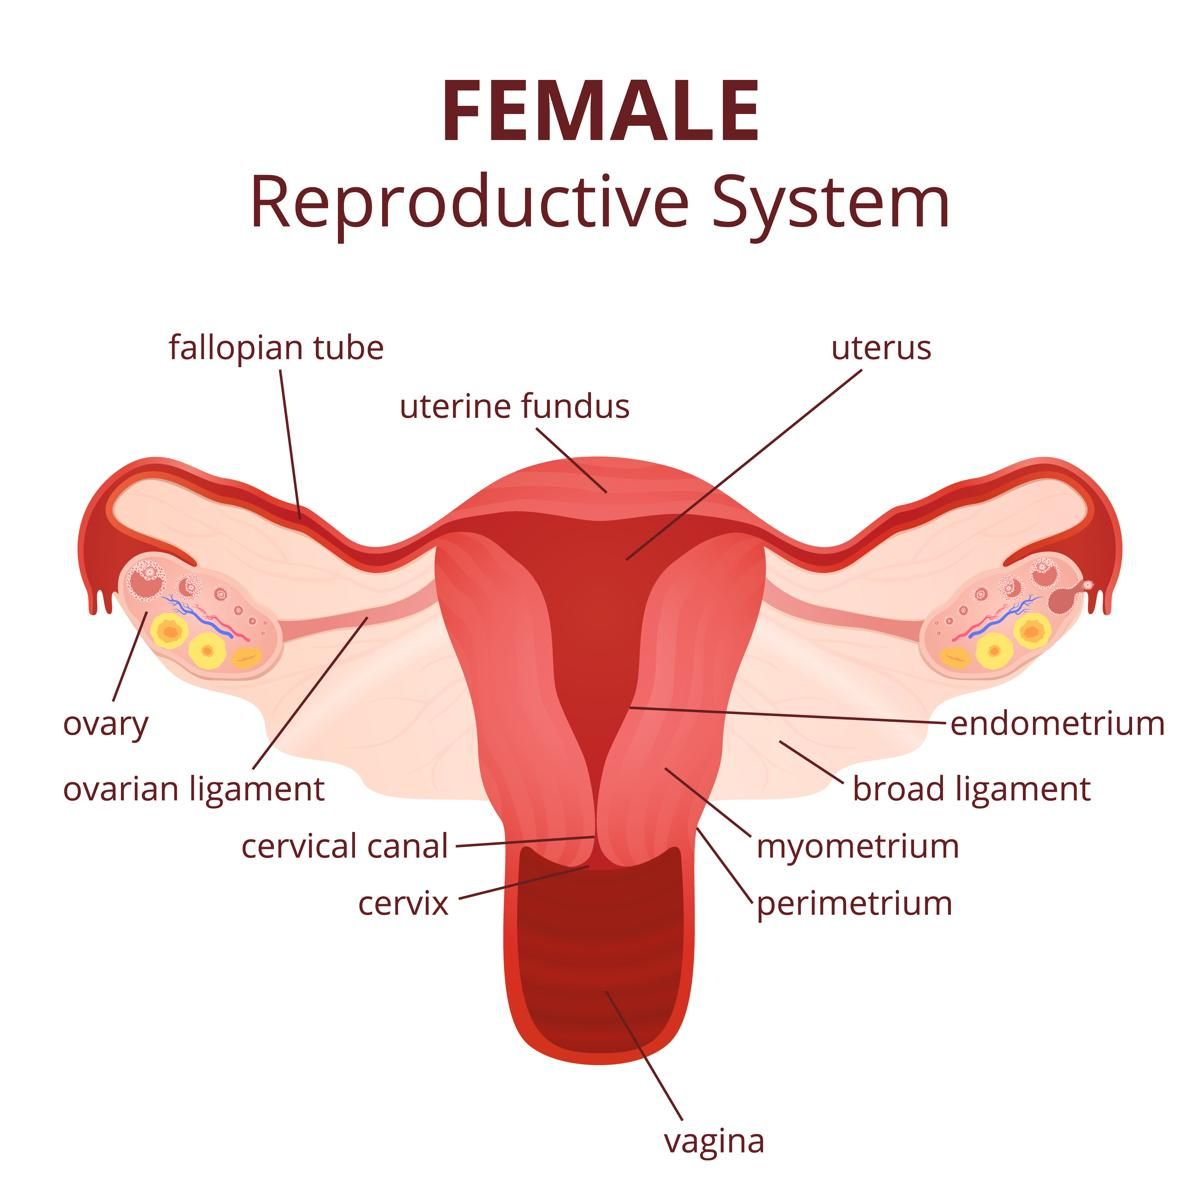 female reproductive system diagram printable diagram [ 1200 x 1200 Pixel ]